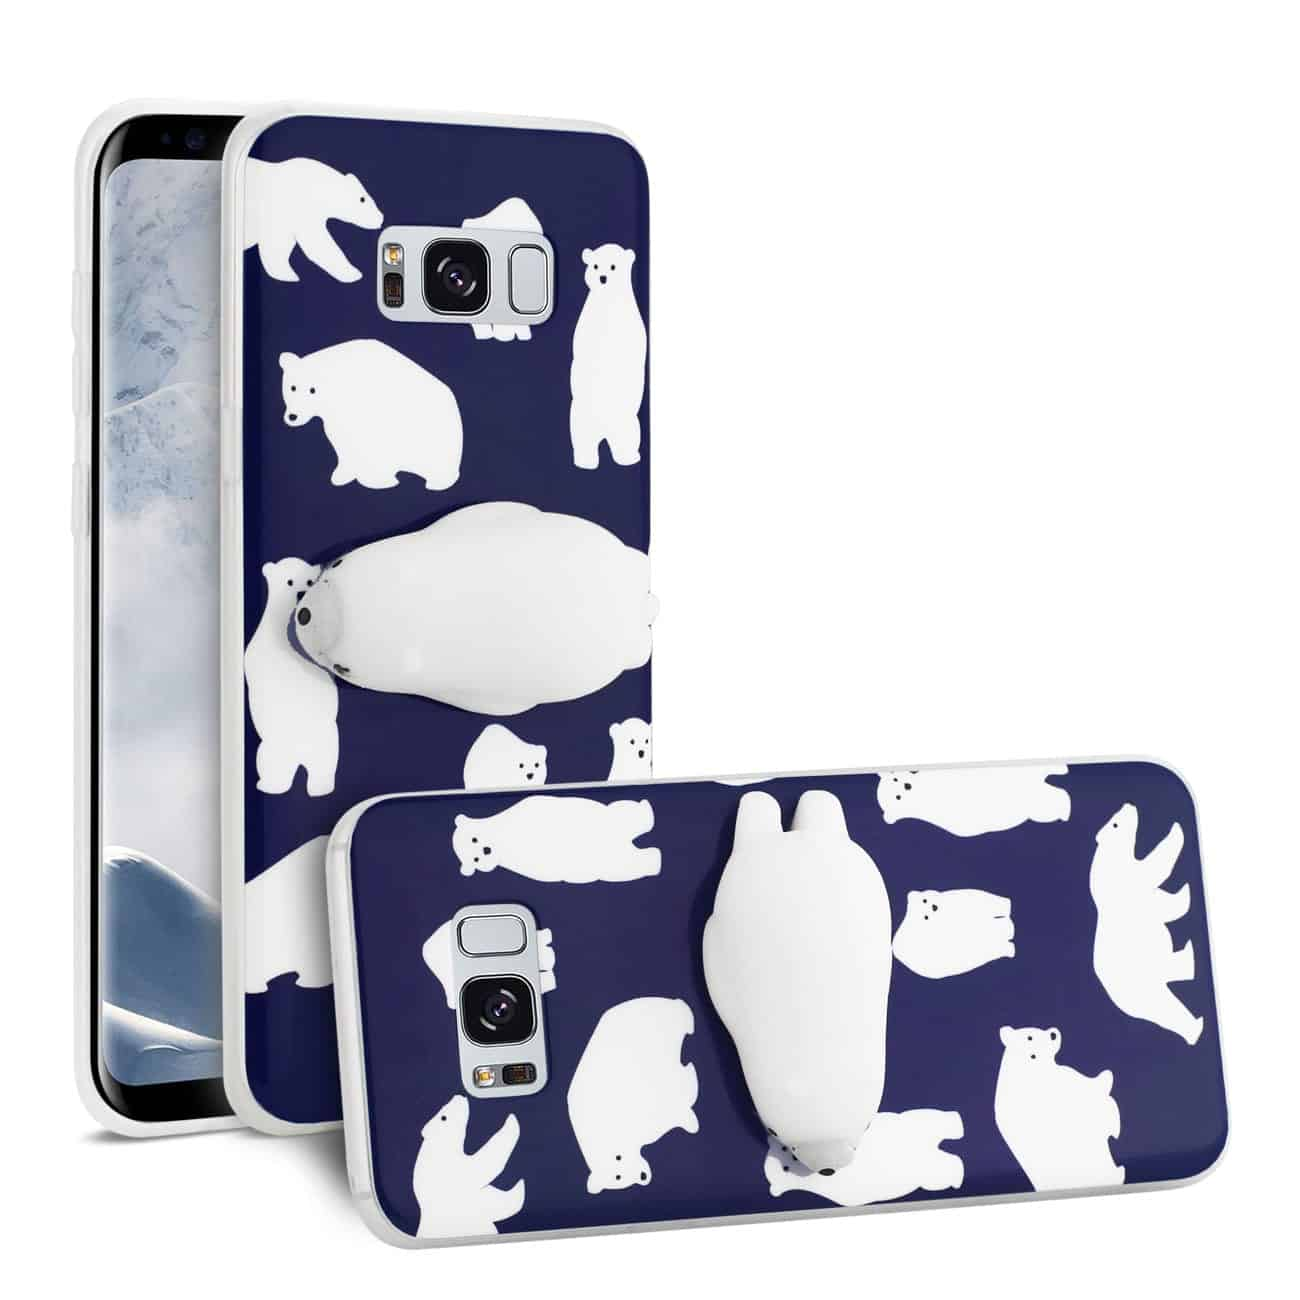 SAMSUNG GALAXY S8 EDGE TPU DESIGN CASE WITH  3D SOFT SILICONE POKE SQUISHY POLAR BEAR